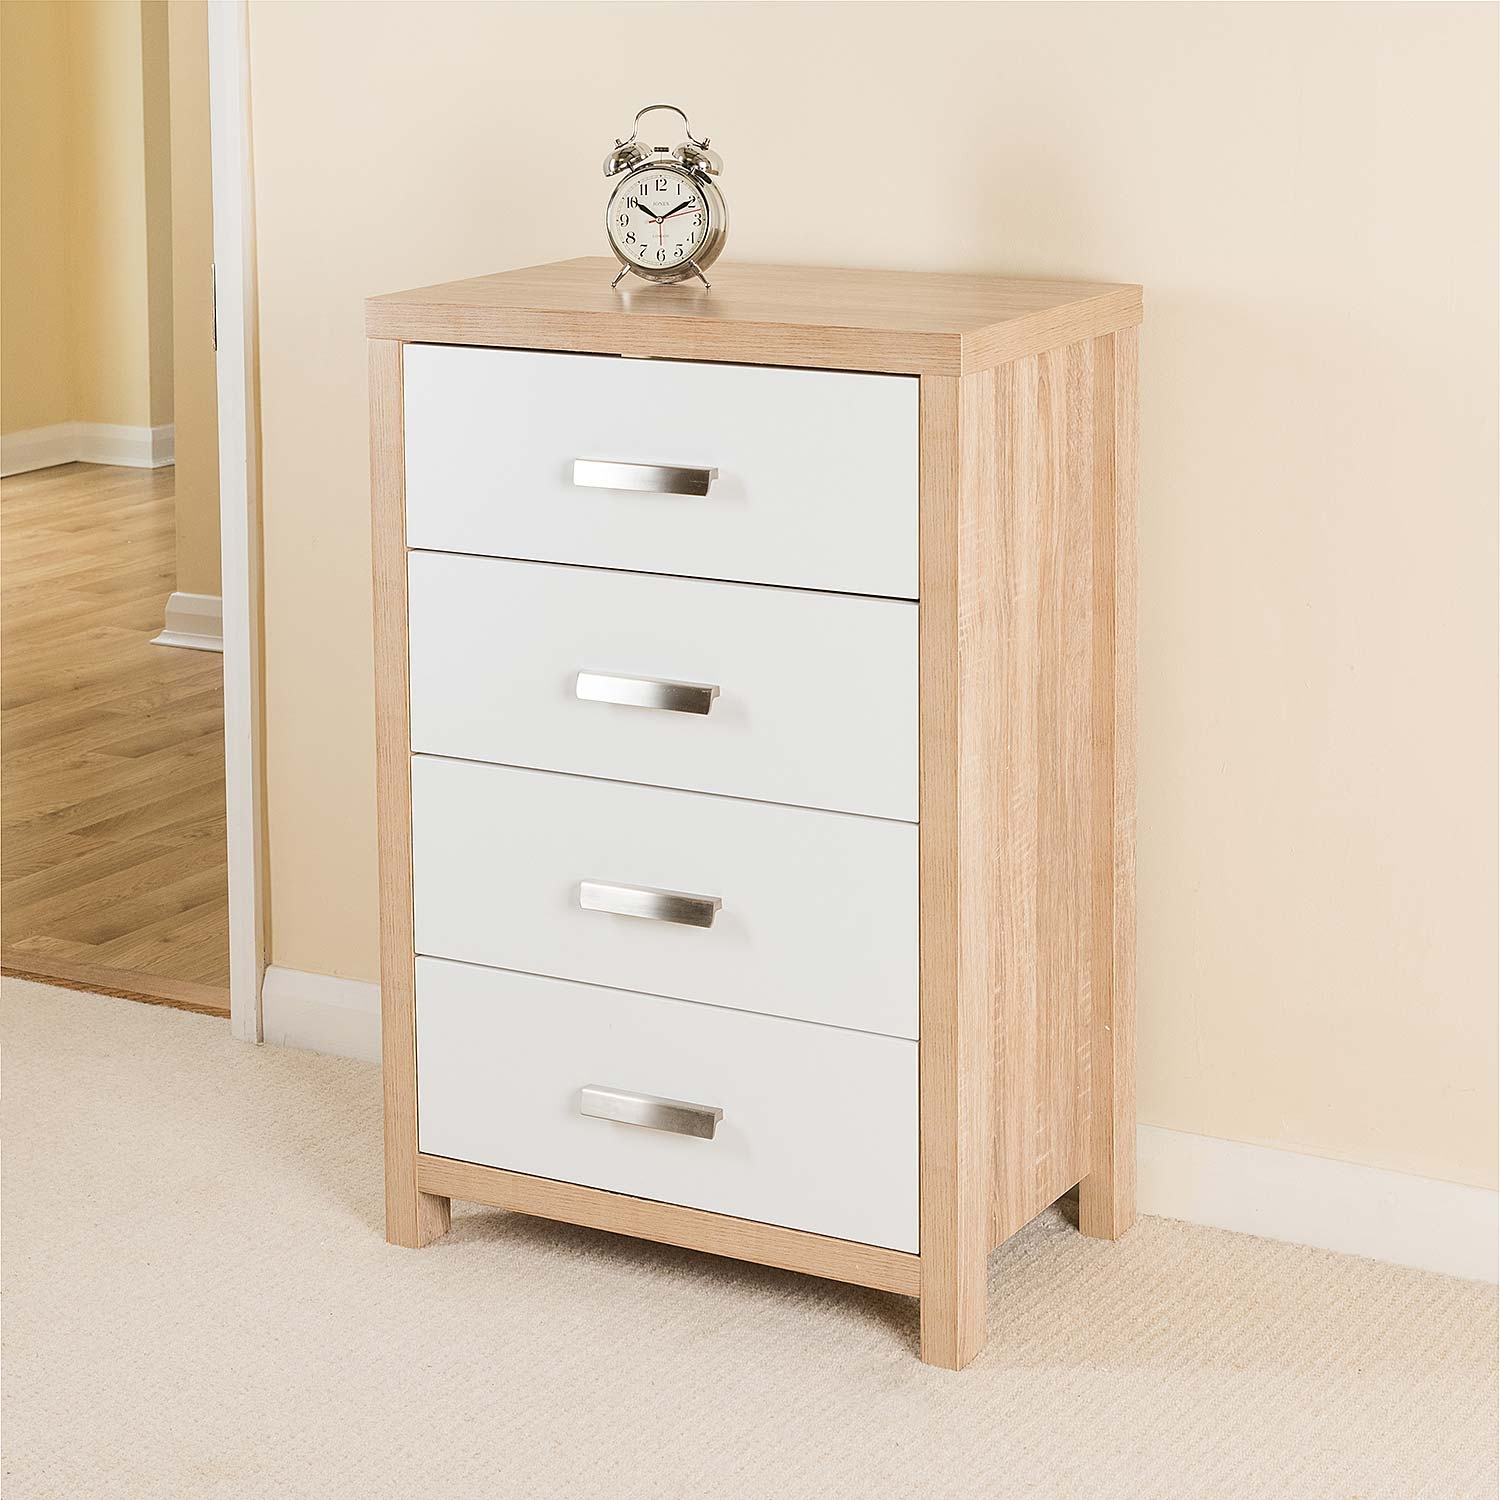 Image of Bianco 4 Drawer Chest, Oak Effect by Christow